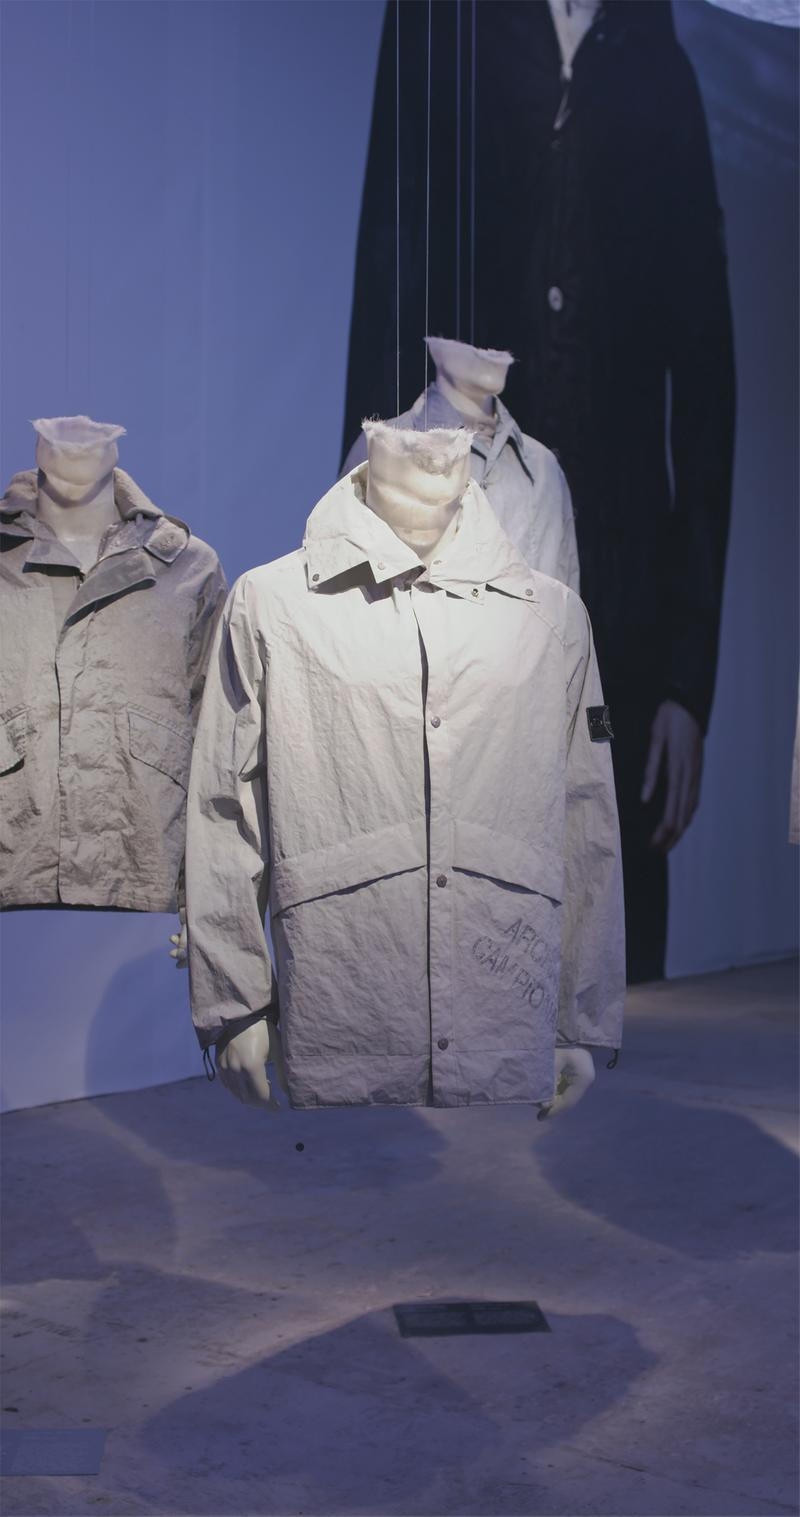 White button up jacket with flap pockets, double collar displayed on mannequin bust, with other light colored jackets in the background